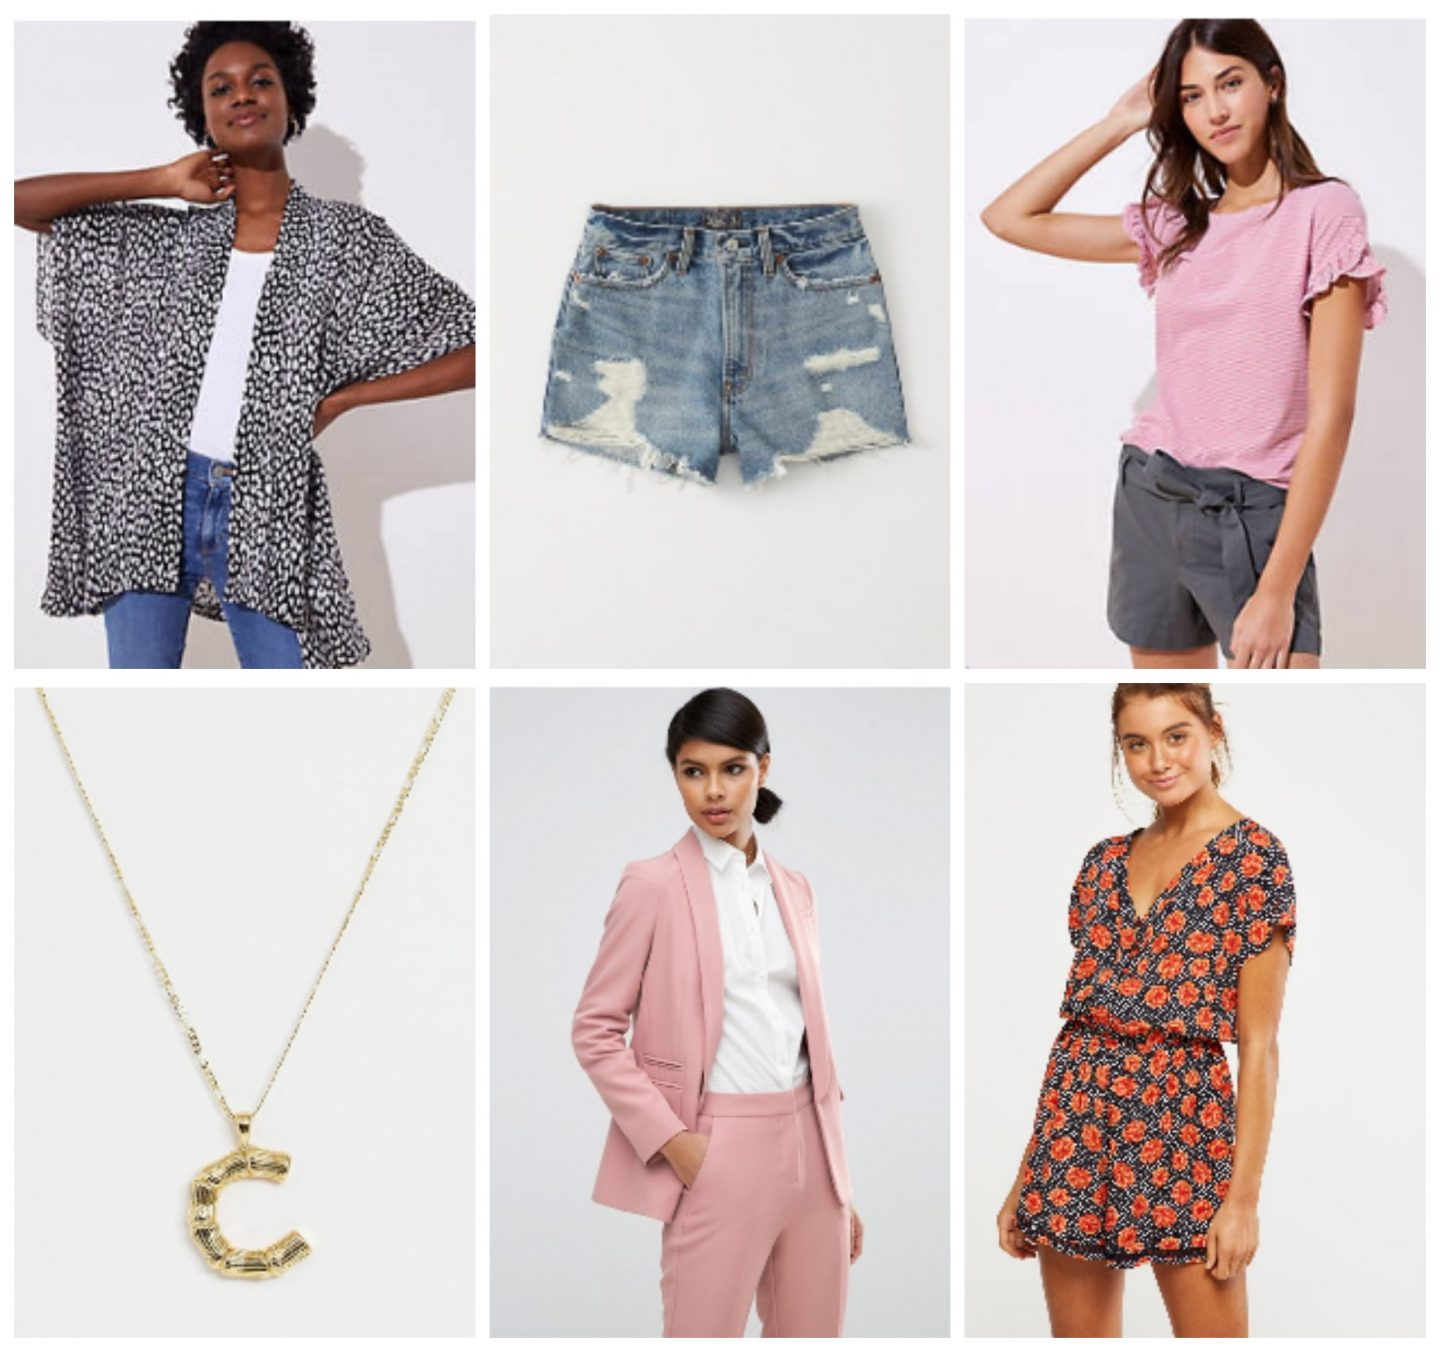 Tuesday's Cravings: Spring Finds